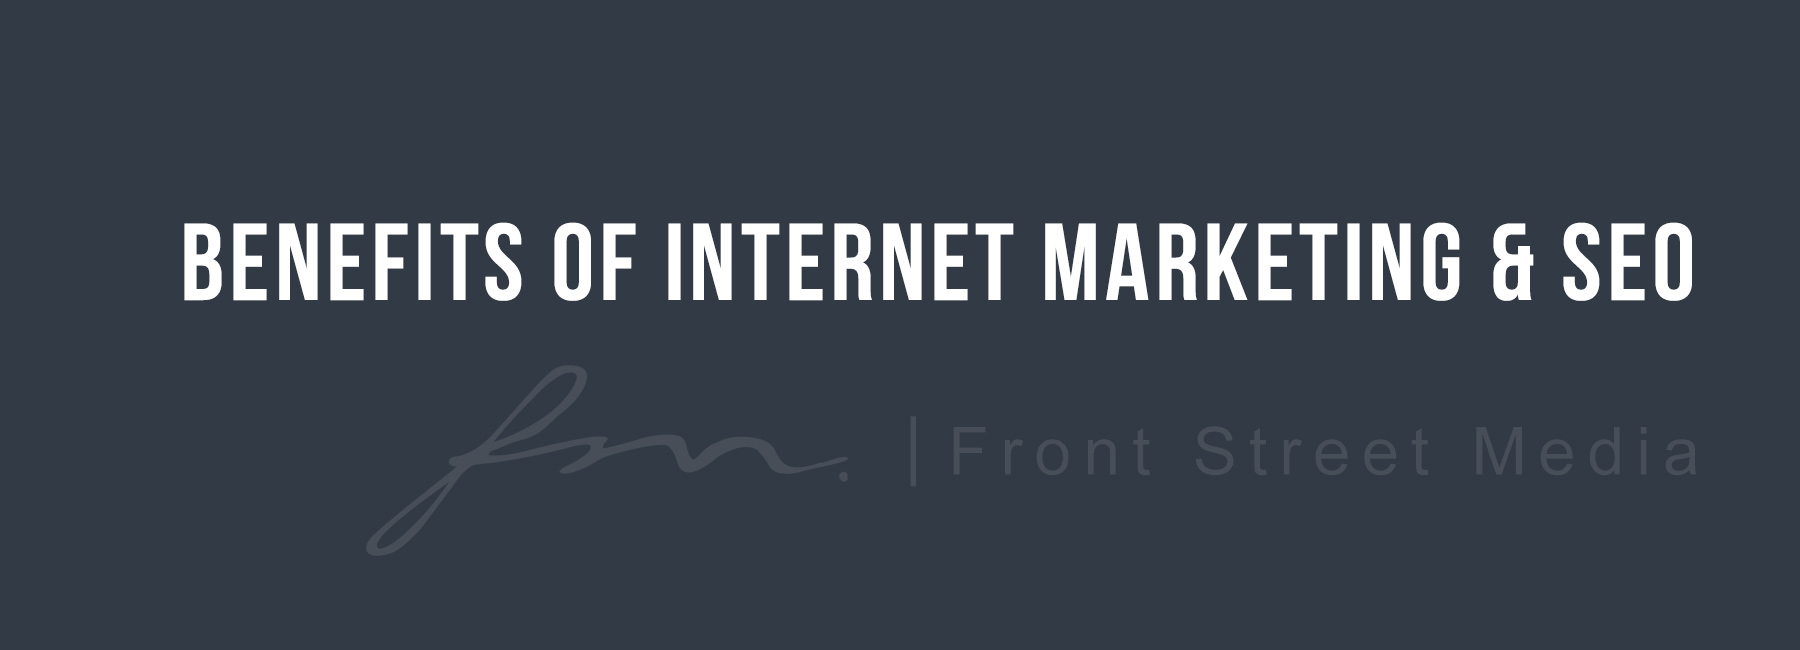 Benefits of Internet marketing & SEO